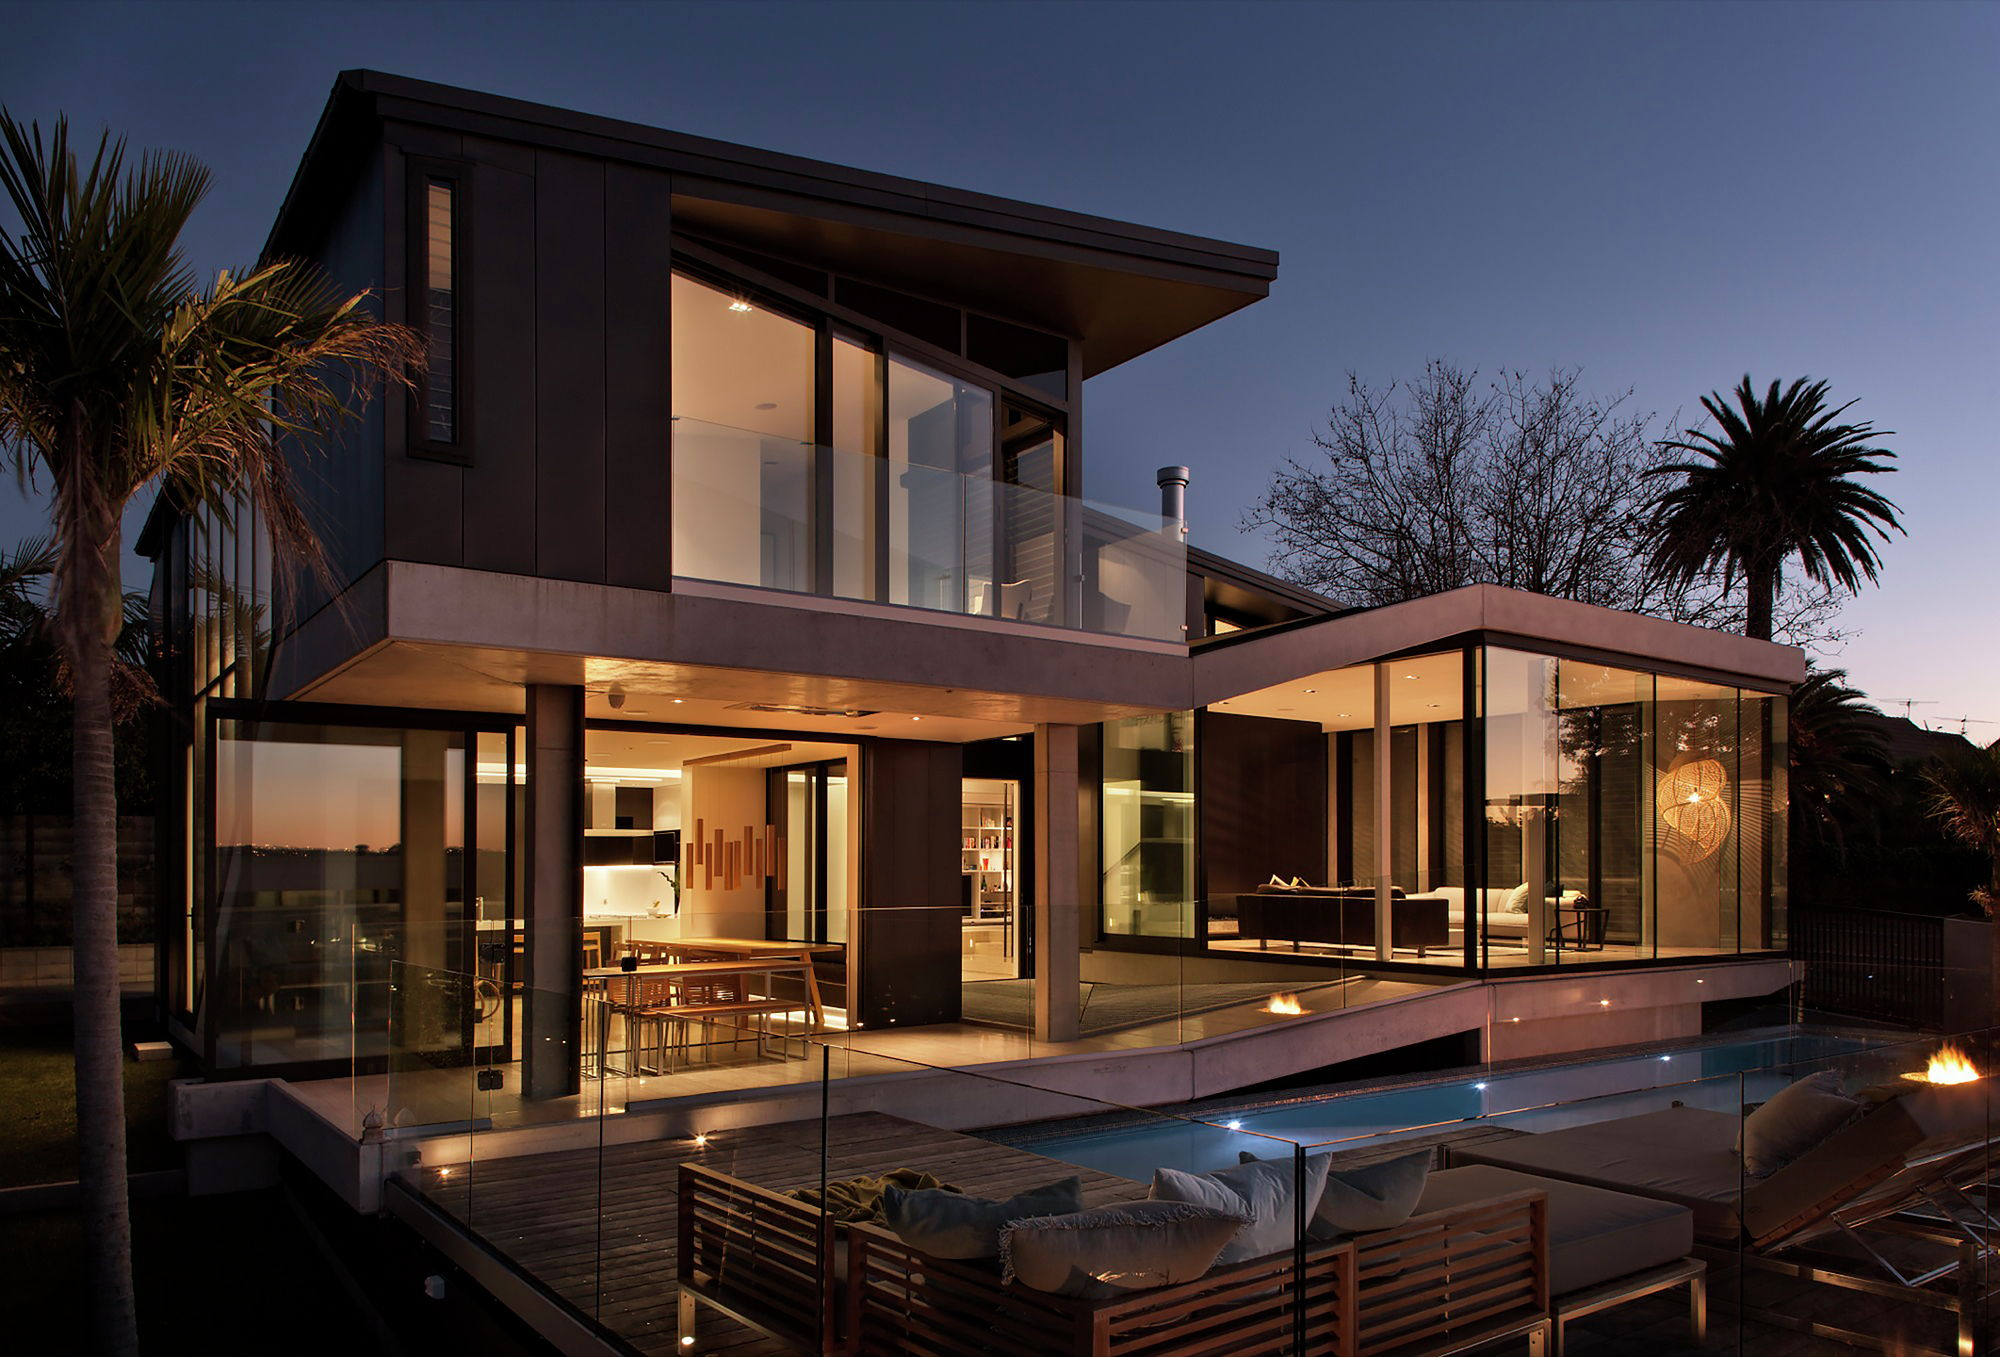 Out of town villa in new zealand upon the project of for Best villa design